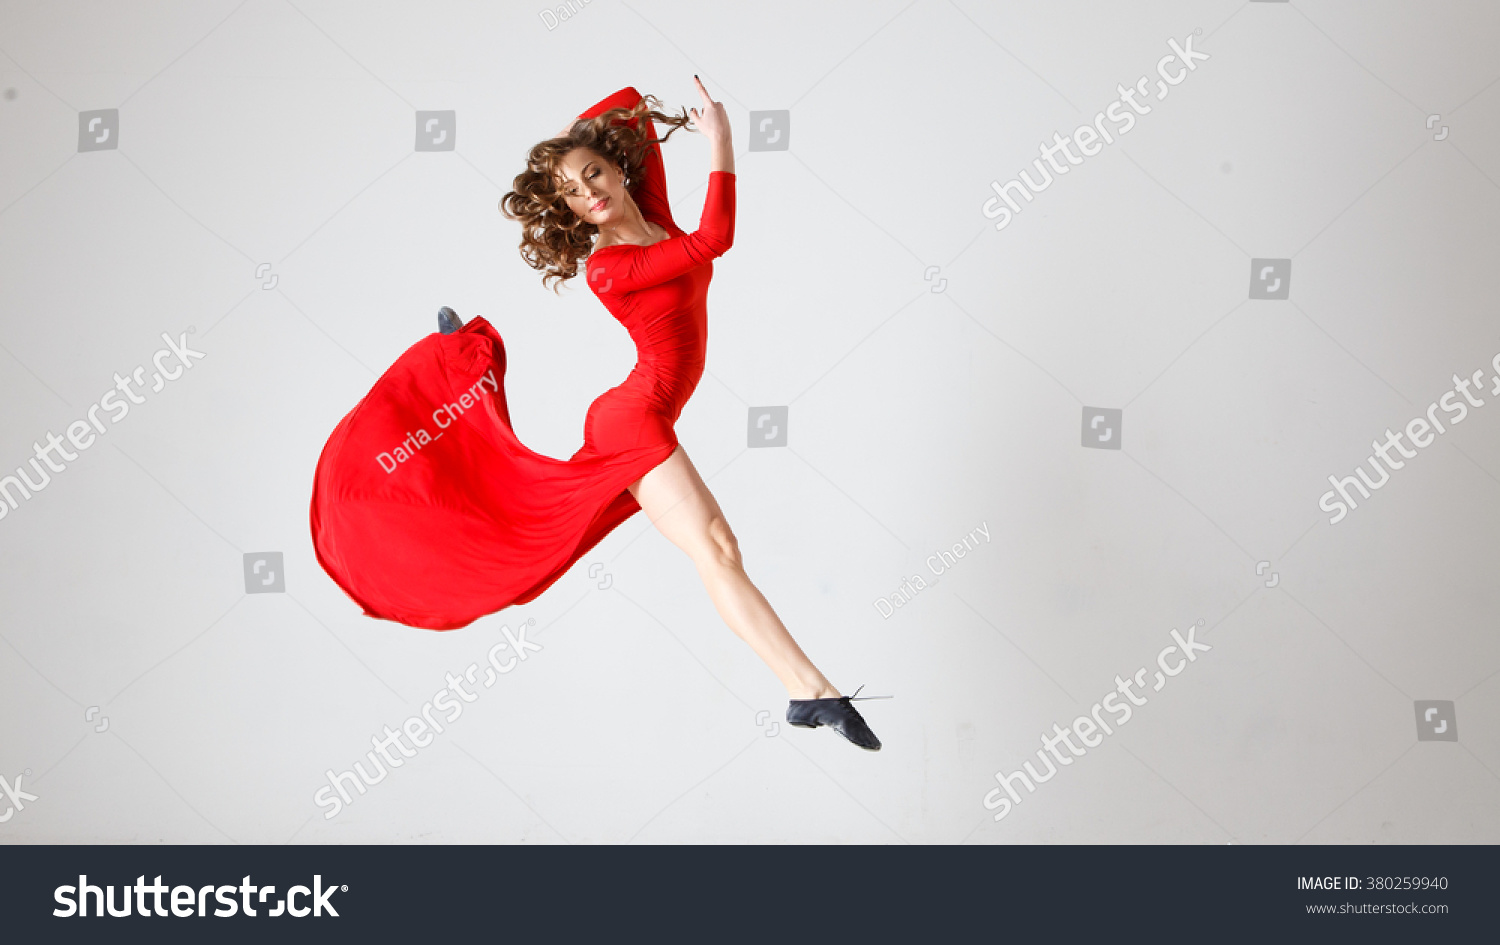 0d0e94a6a Dancing lady in a red dress. Contemporary modern dance on a white  background isolated.